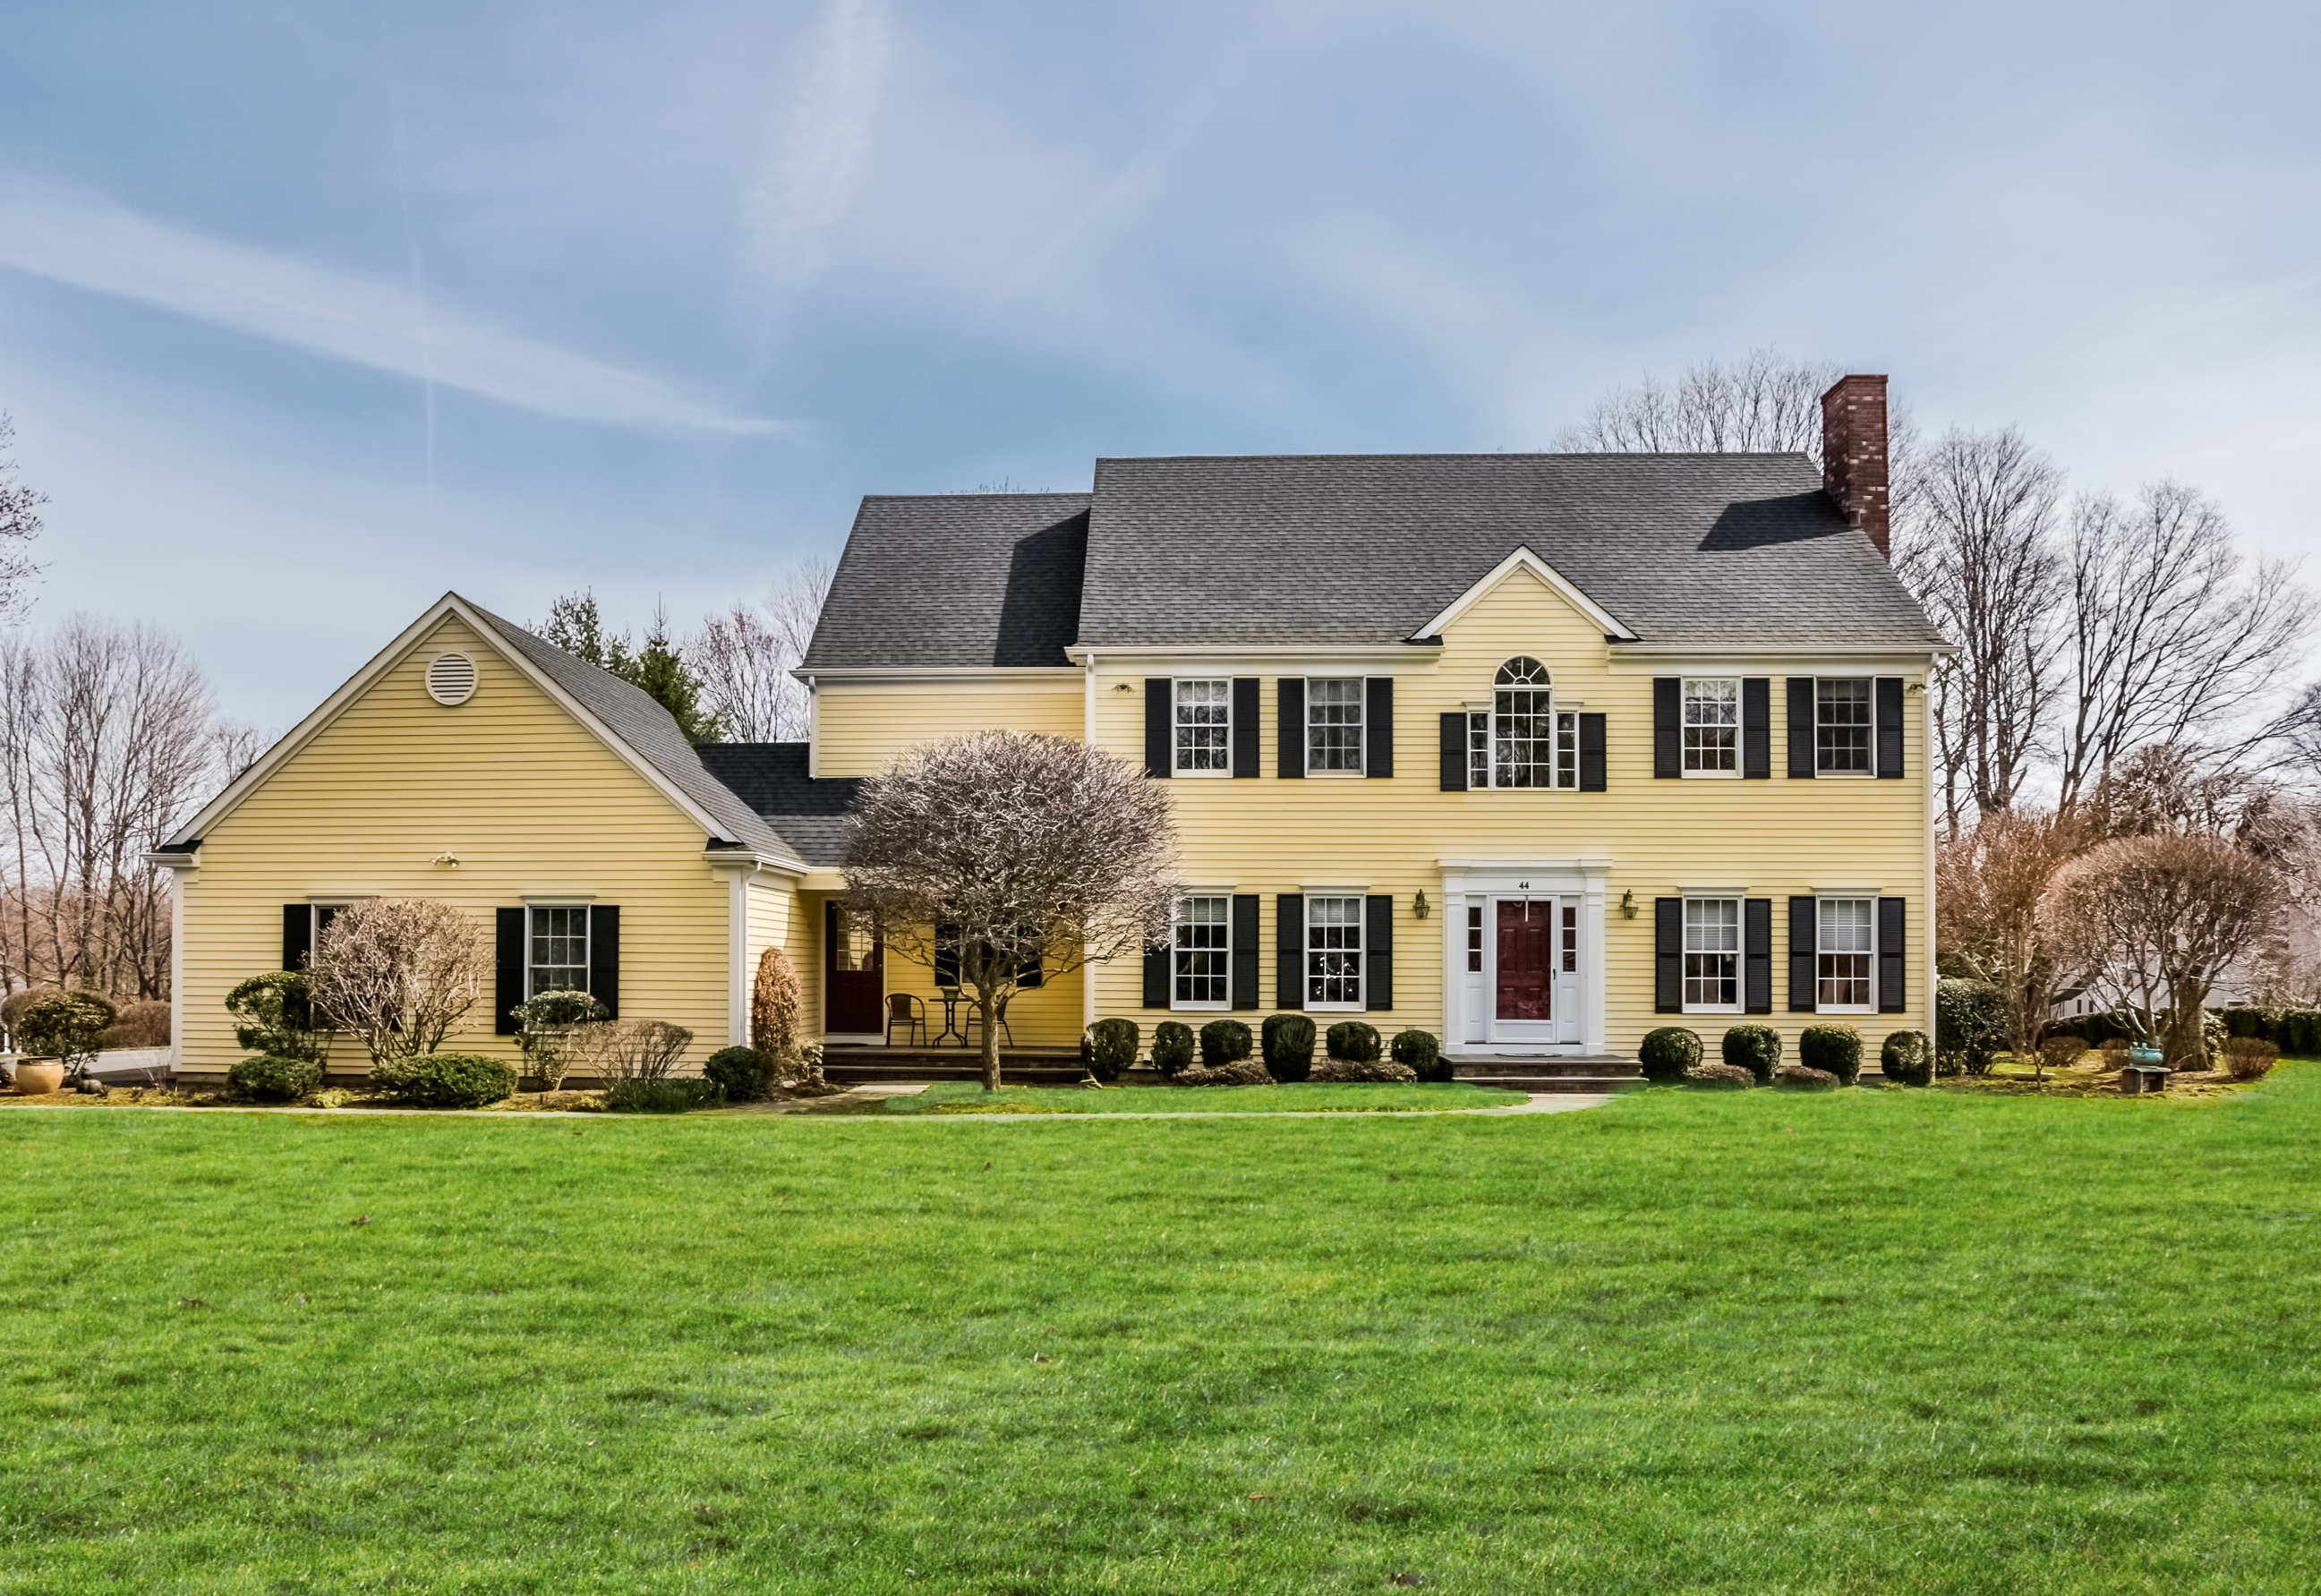 Ridgefield Connecticut Homes for Sale